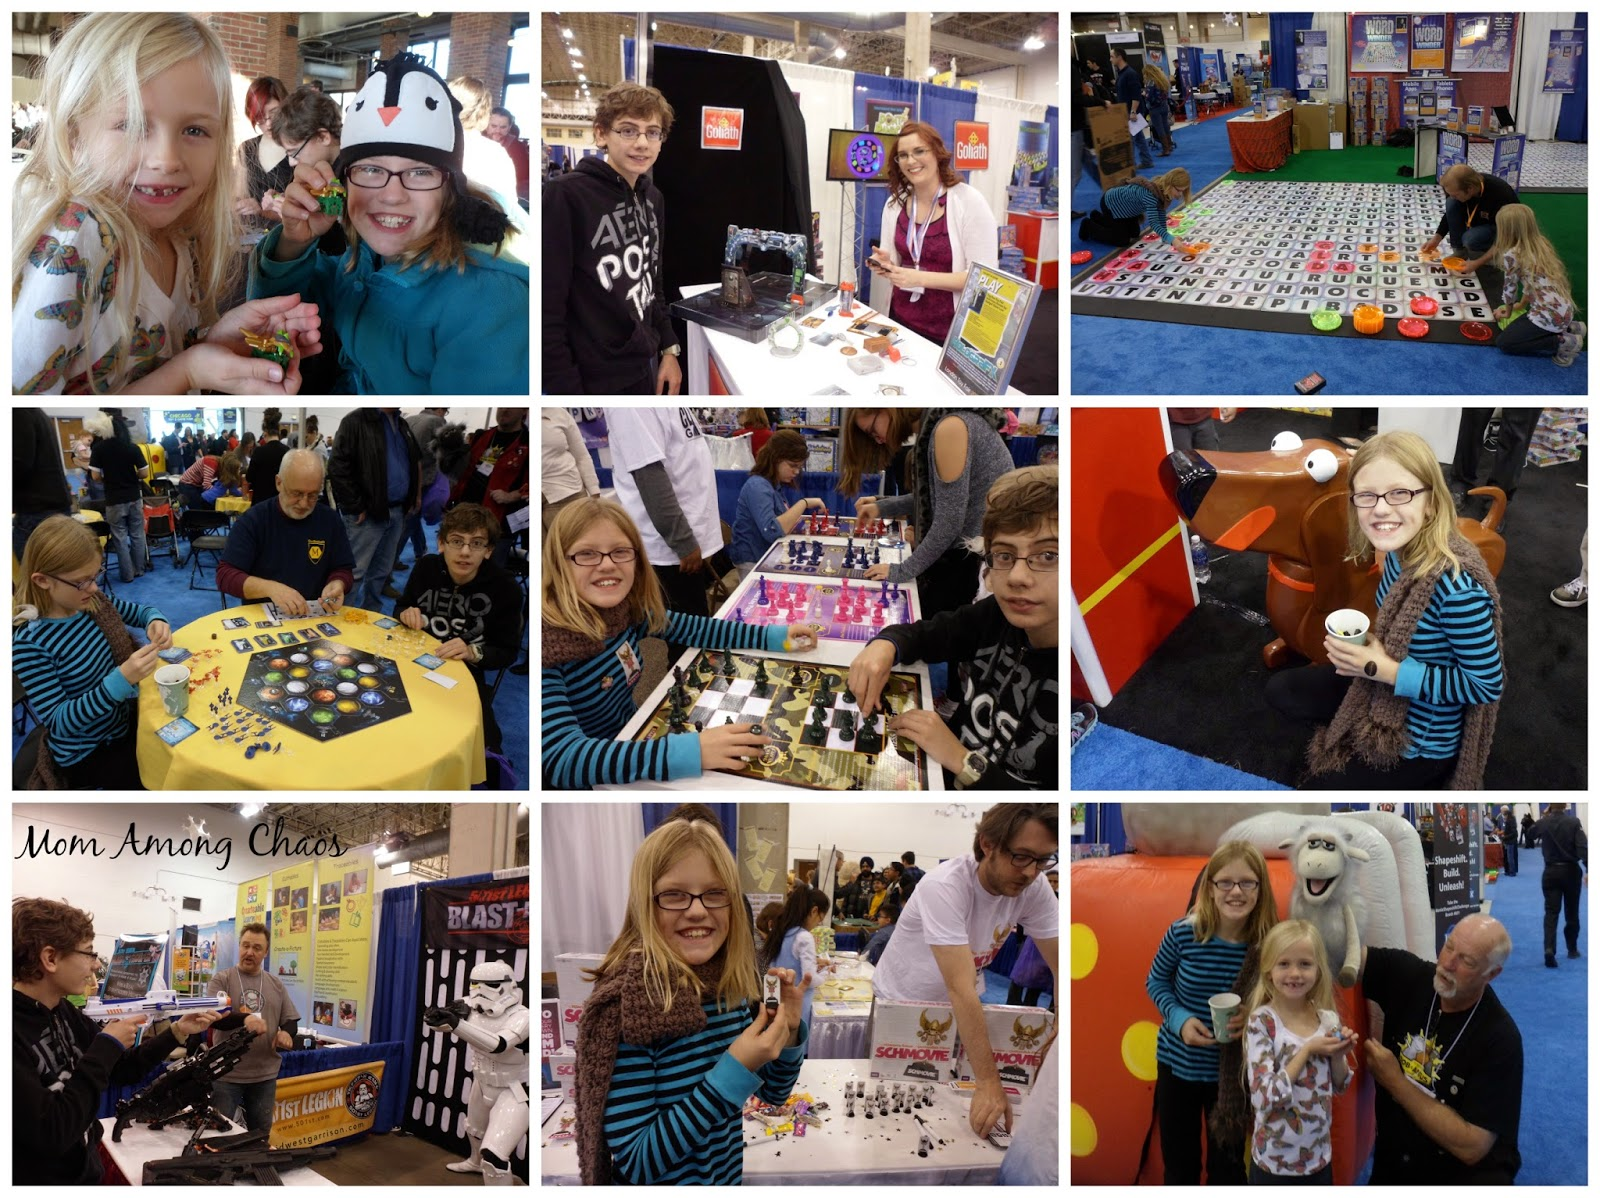 Chicago, ChiTAG Fair, Toys, board games, Family game night, game, photos, discount, coupon, fun, event, family, star wars